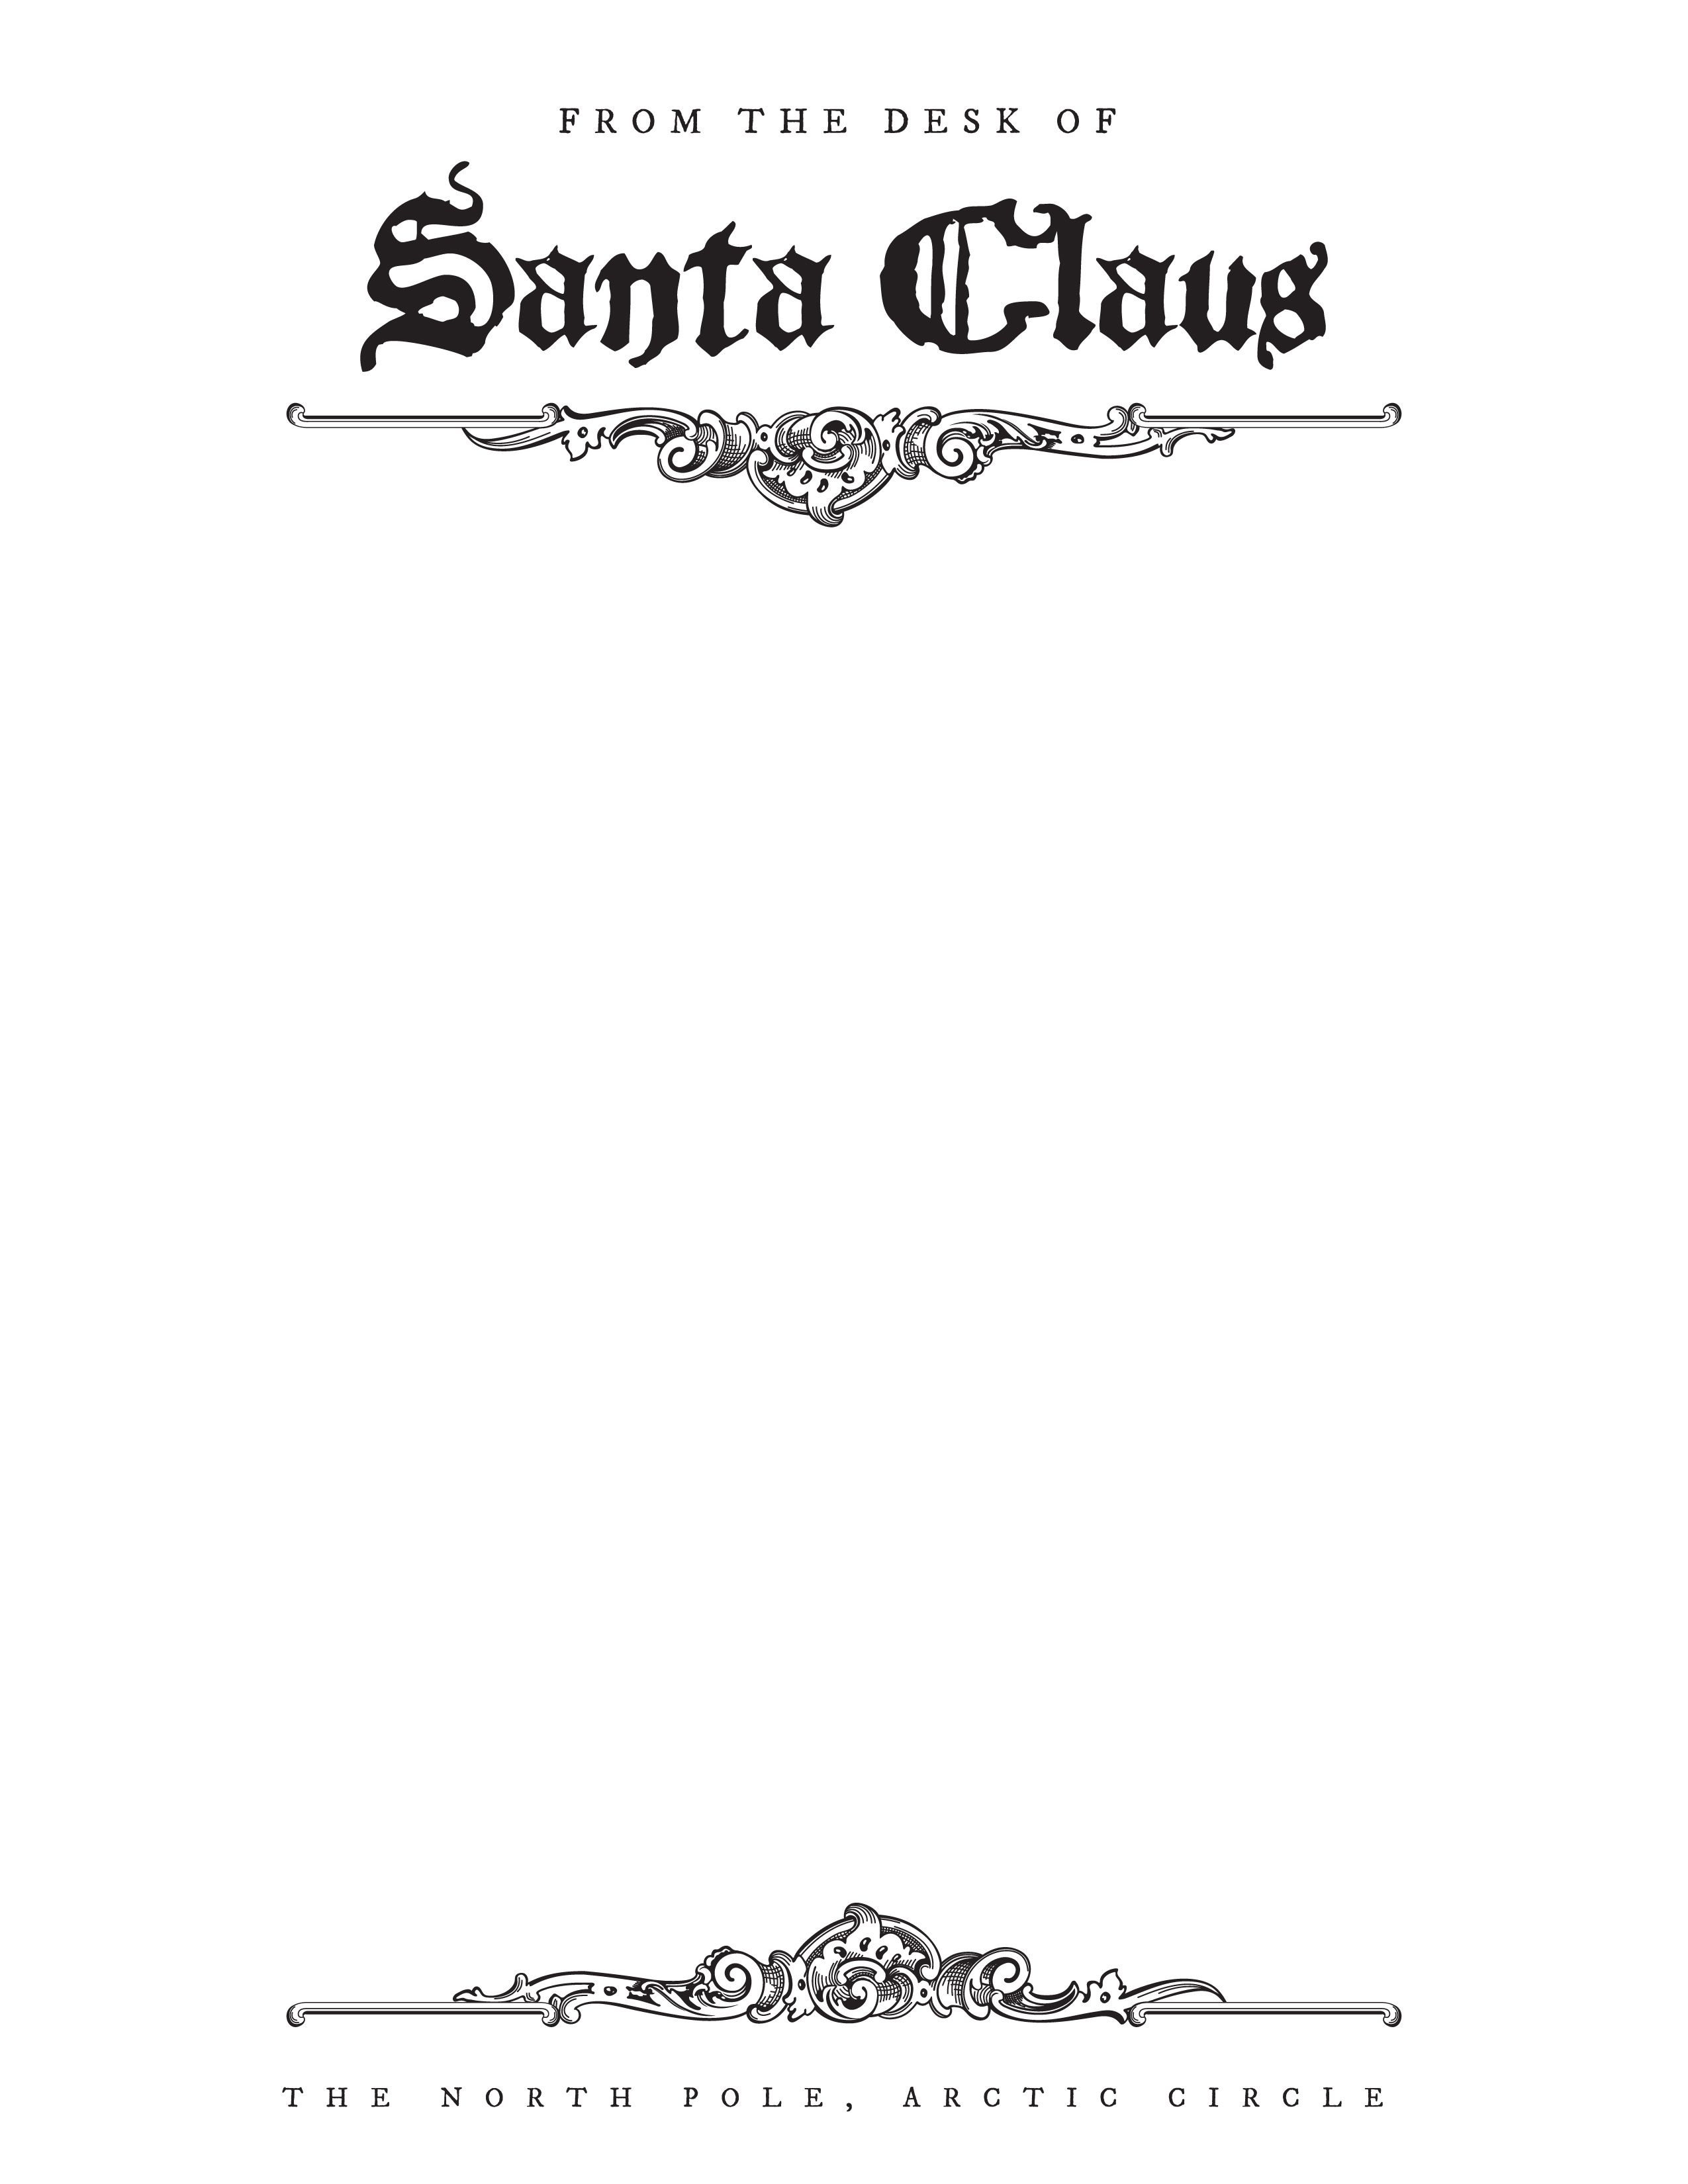 Free Letter From Santa Stationary Template | Christmas | Santa - North Pole Stationary Printable Free